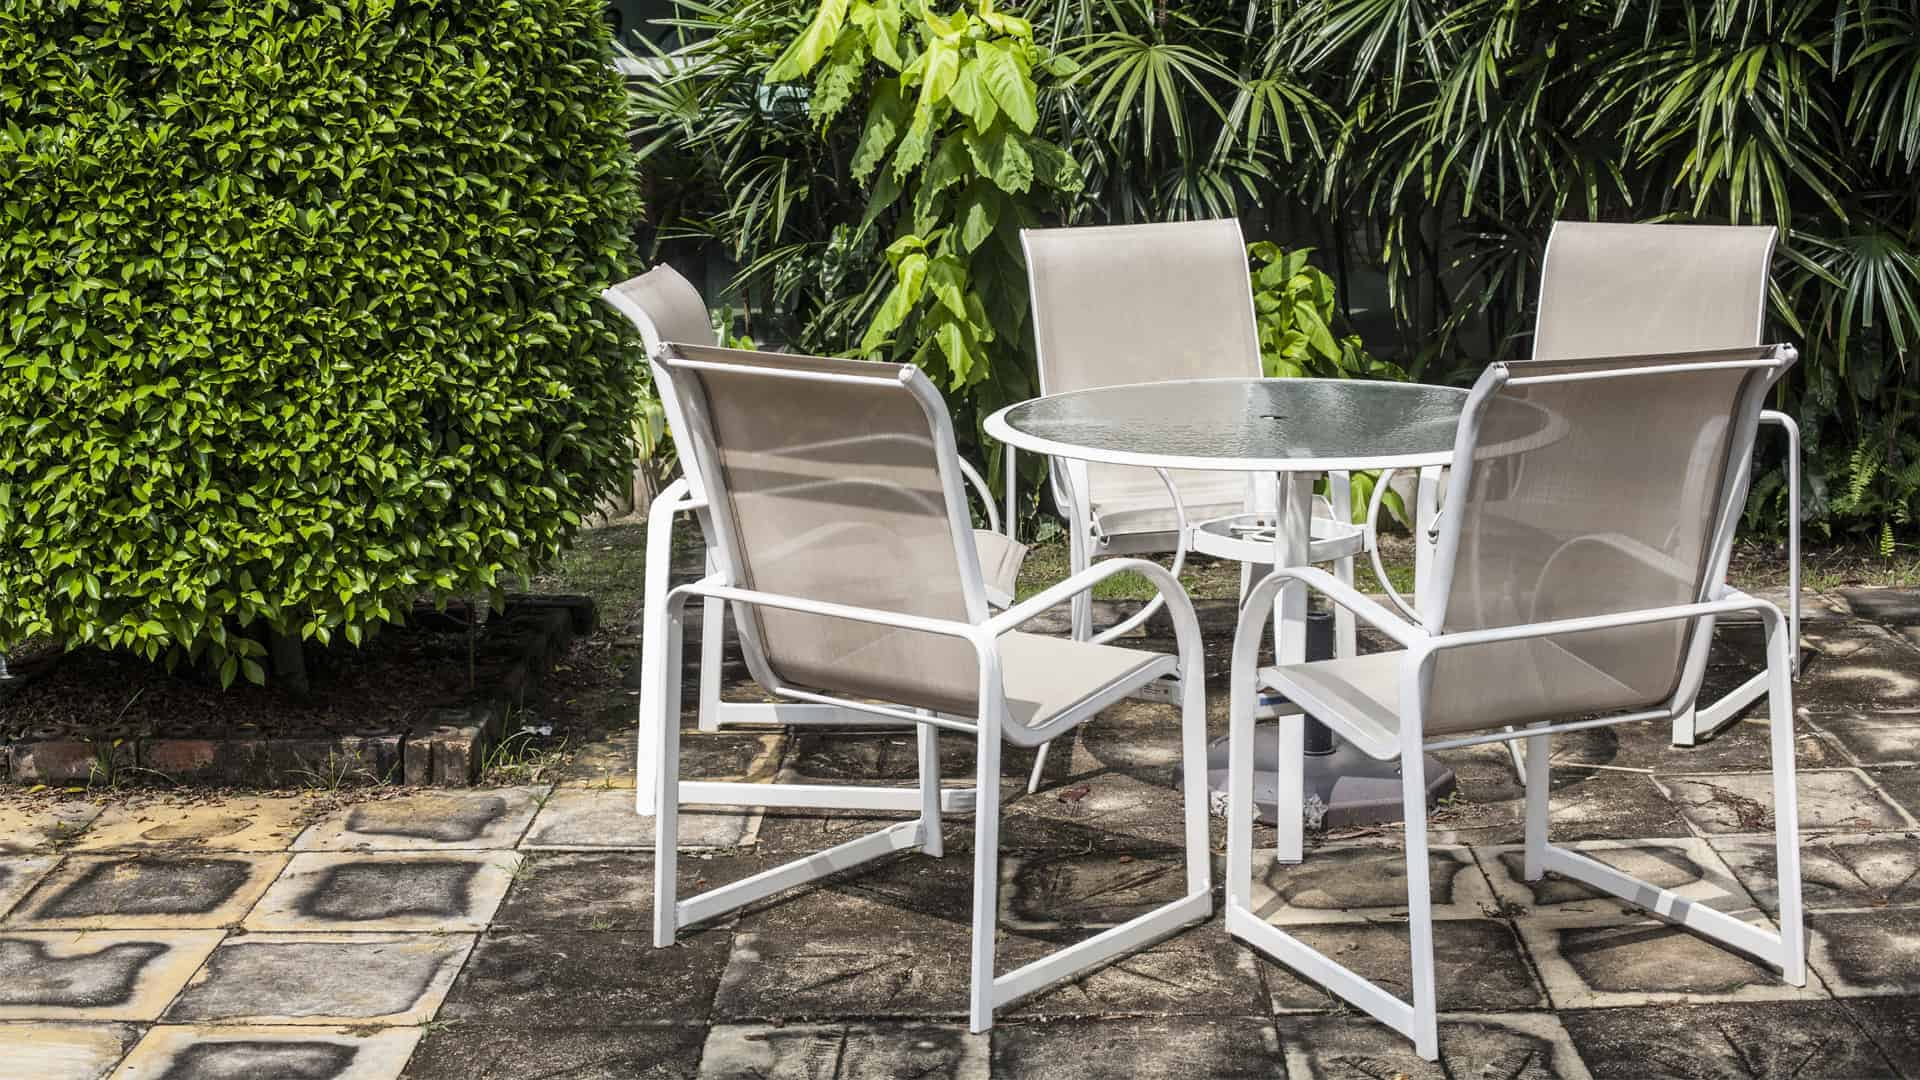 sling chairs and acrylic table in front of green garden hedge